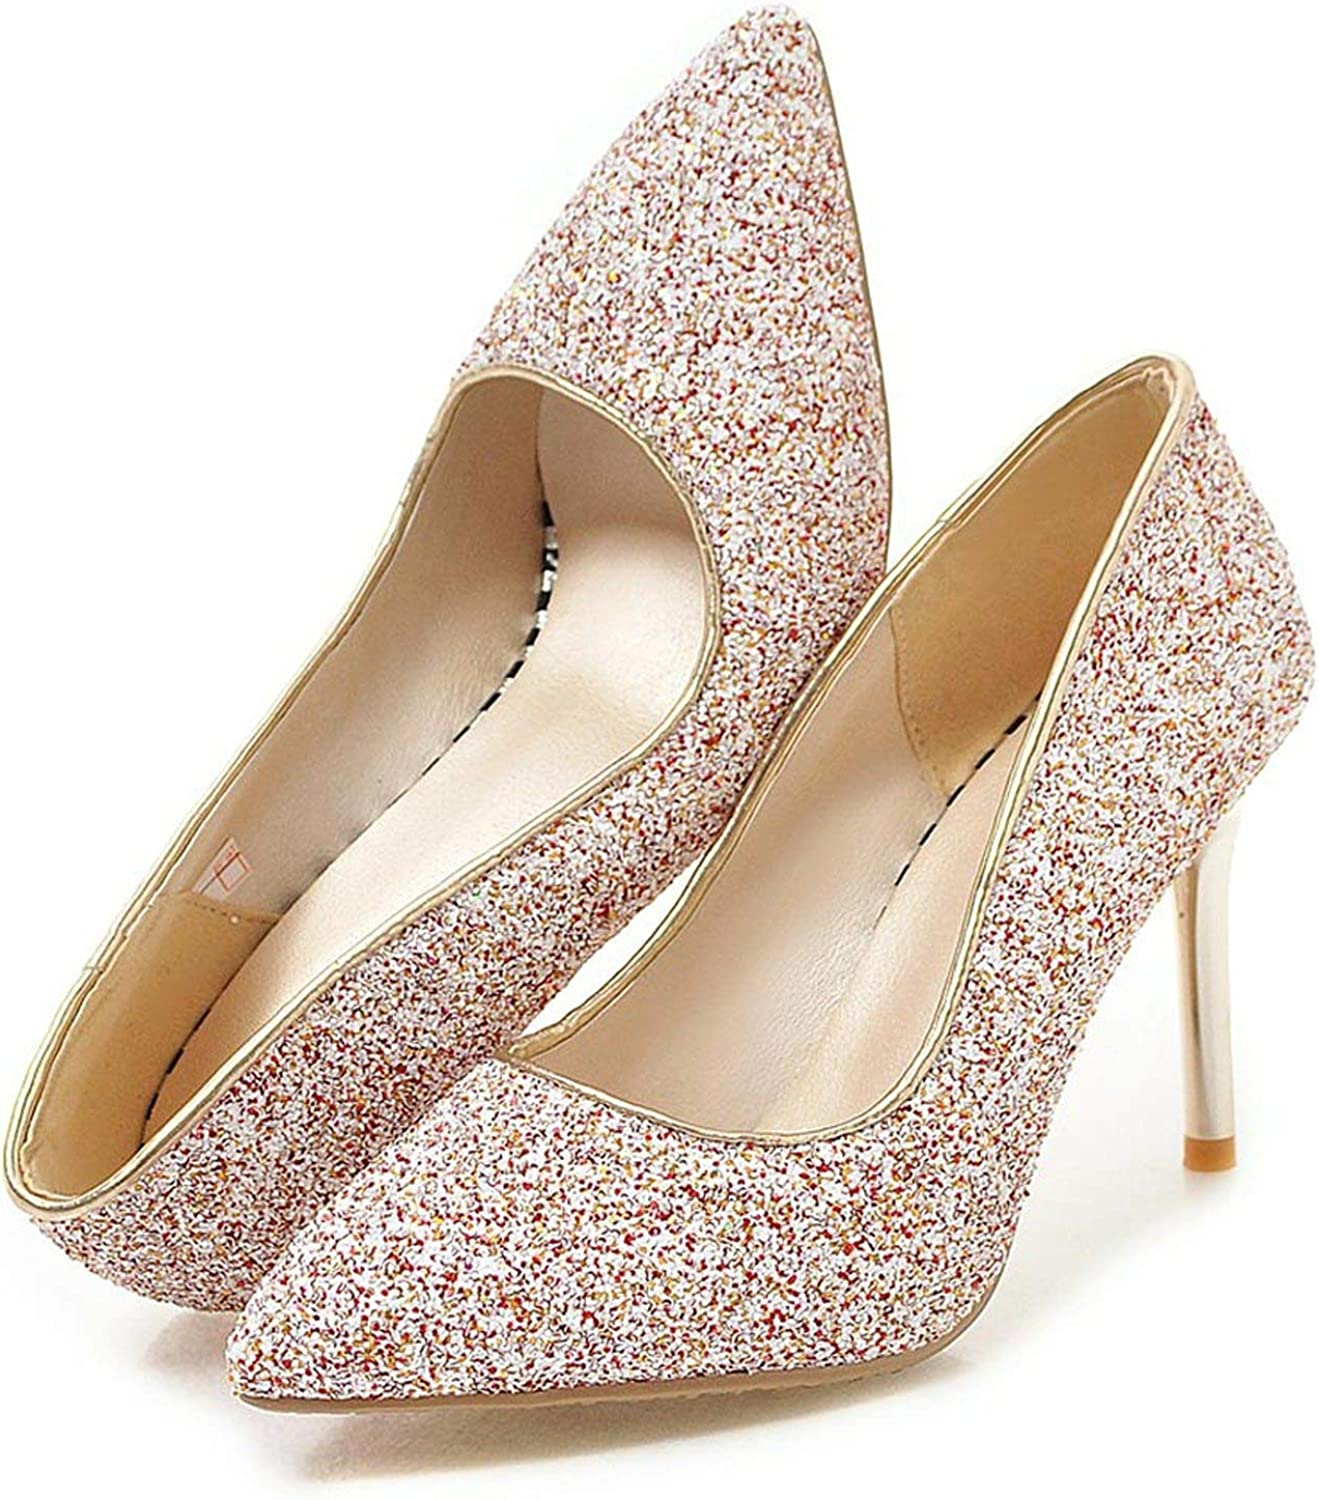 FINDYOU Sequins Cloth Women Pumps Thin High Heels Pointed Toe Nude colors Bling Wedding Party shoes Woman